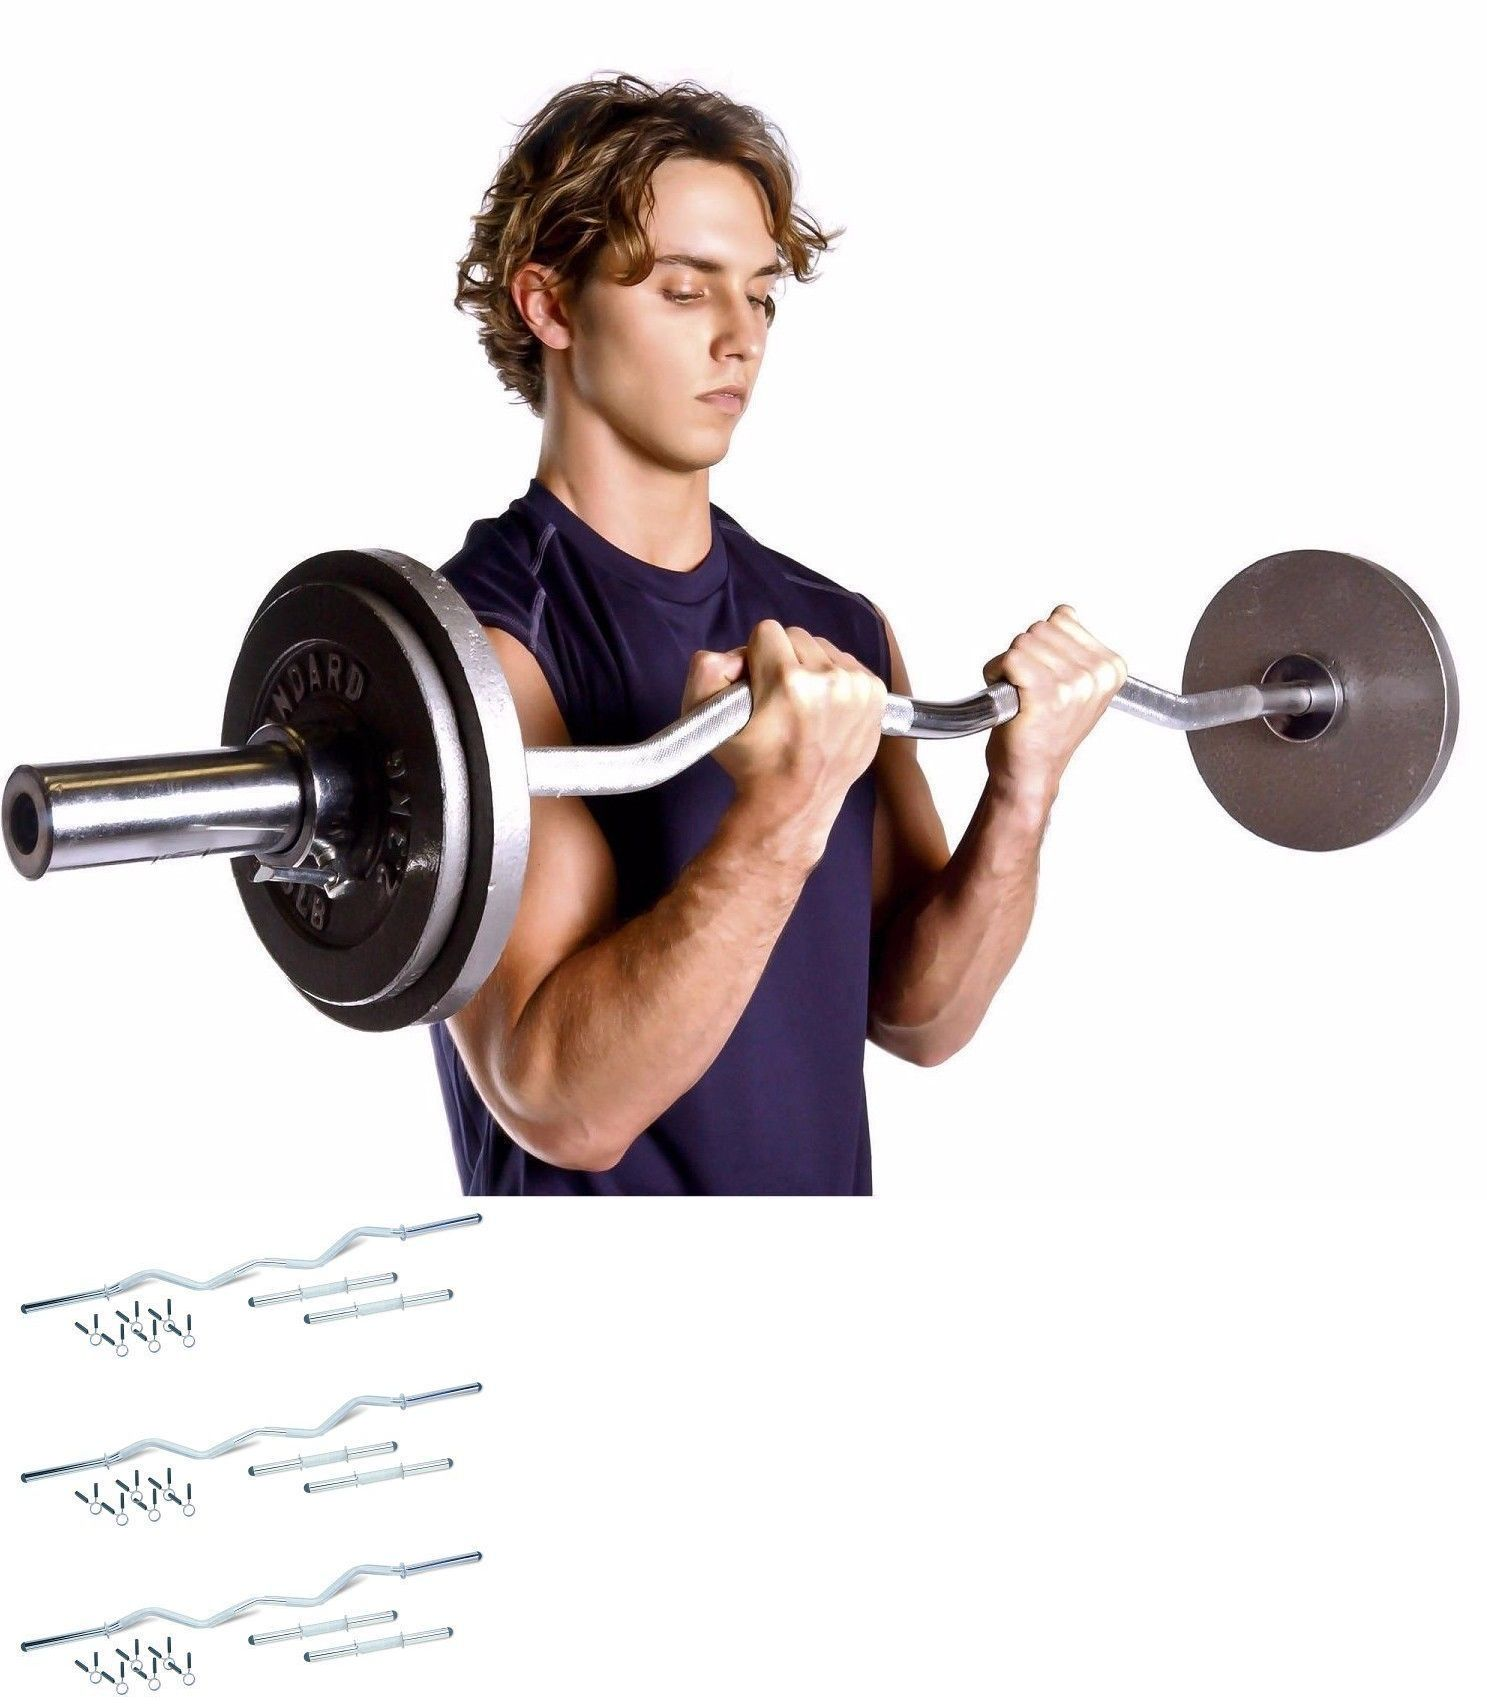 Barbells And Attachments 137864 Workout Training Curl Bar Set Dumbbell Combo Exercise For Women Men